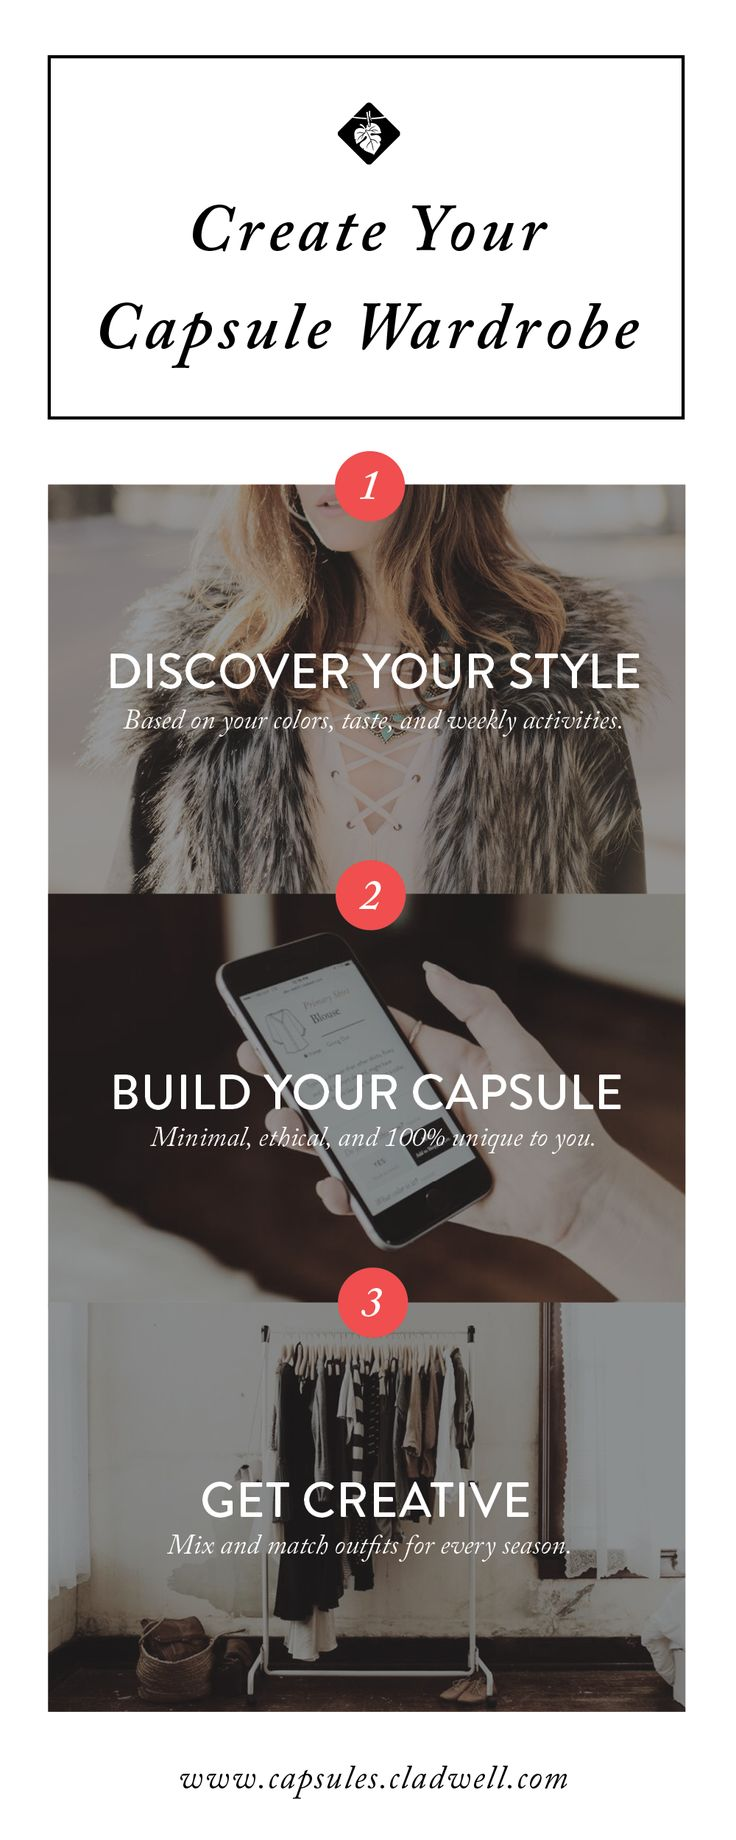 Say goodbye to clutter. Join Capsules to create your capsule wardrobe. We'll walk you through a step-by-step process to create a mini, versatile wardrobe you love.